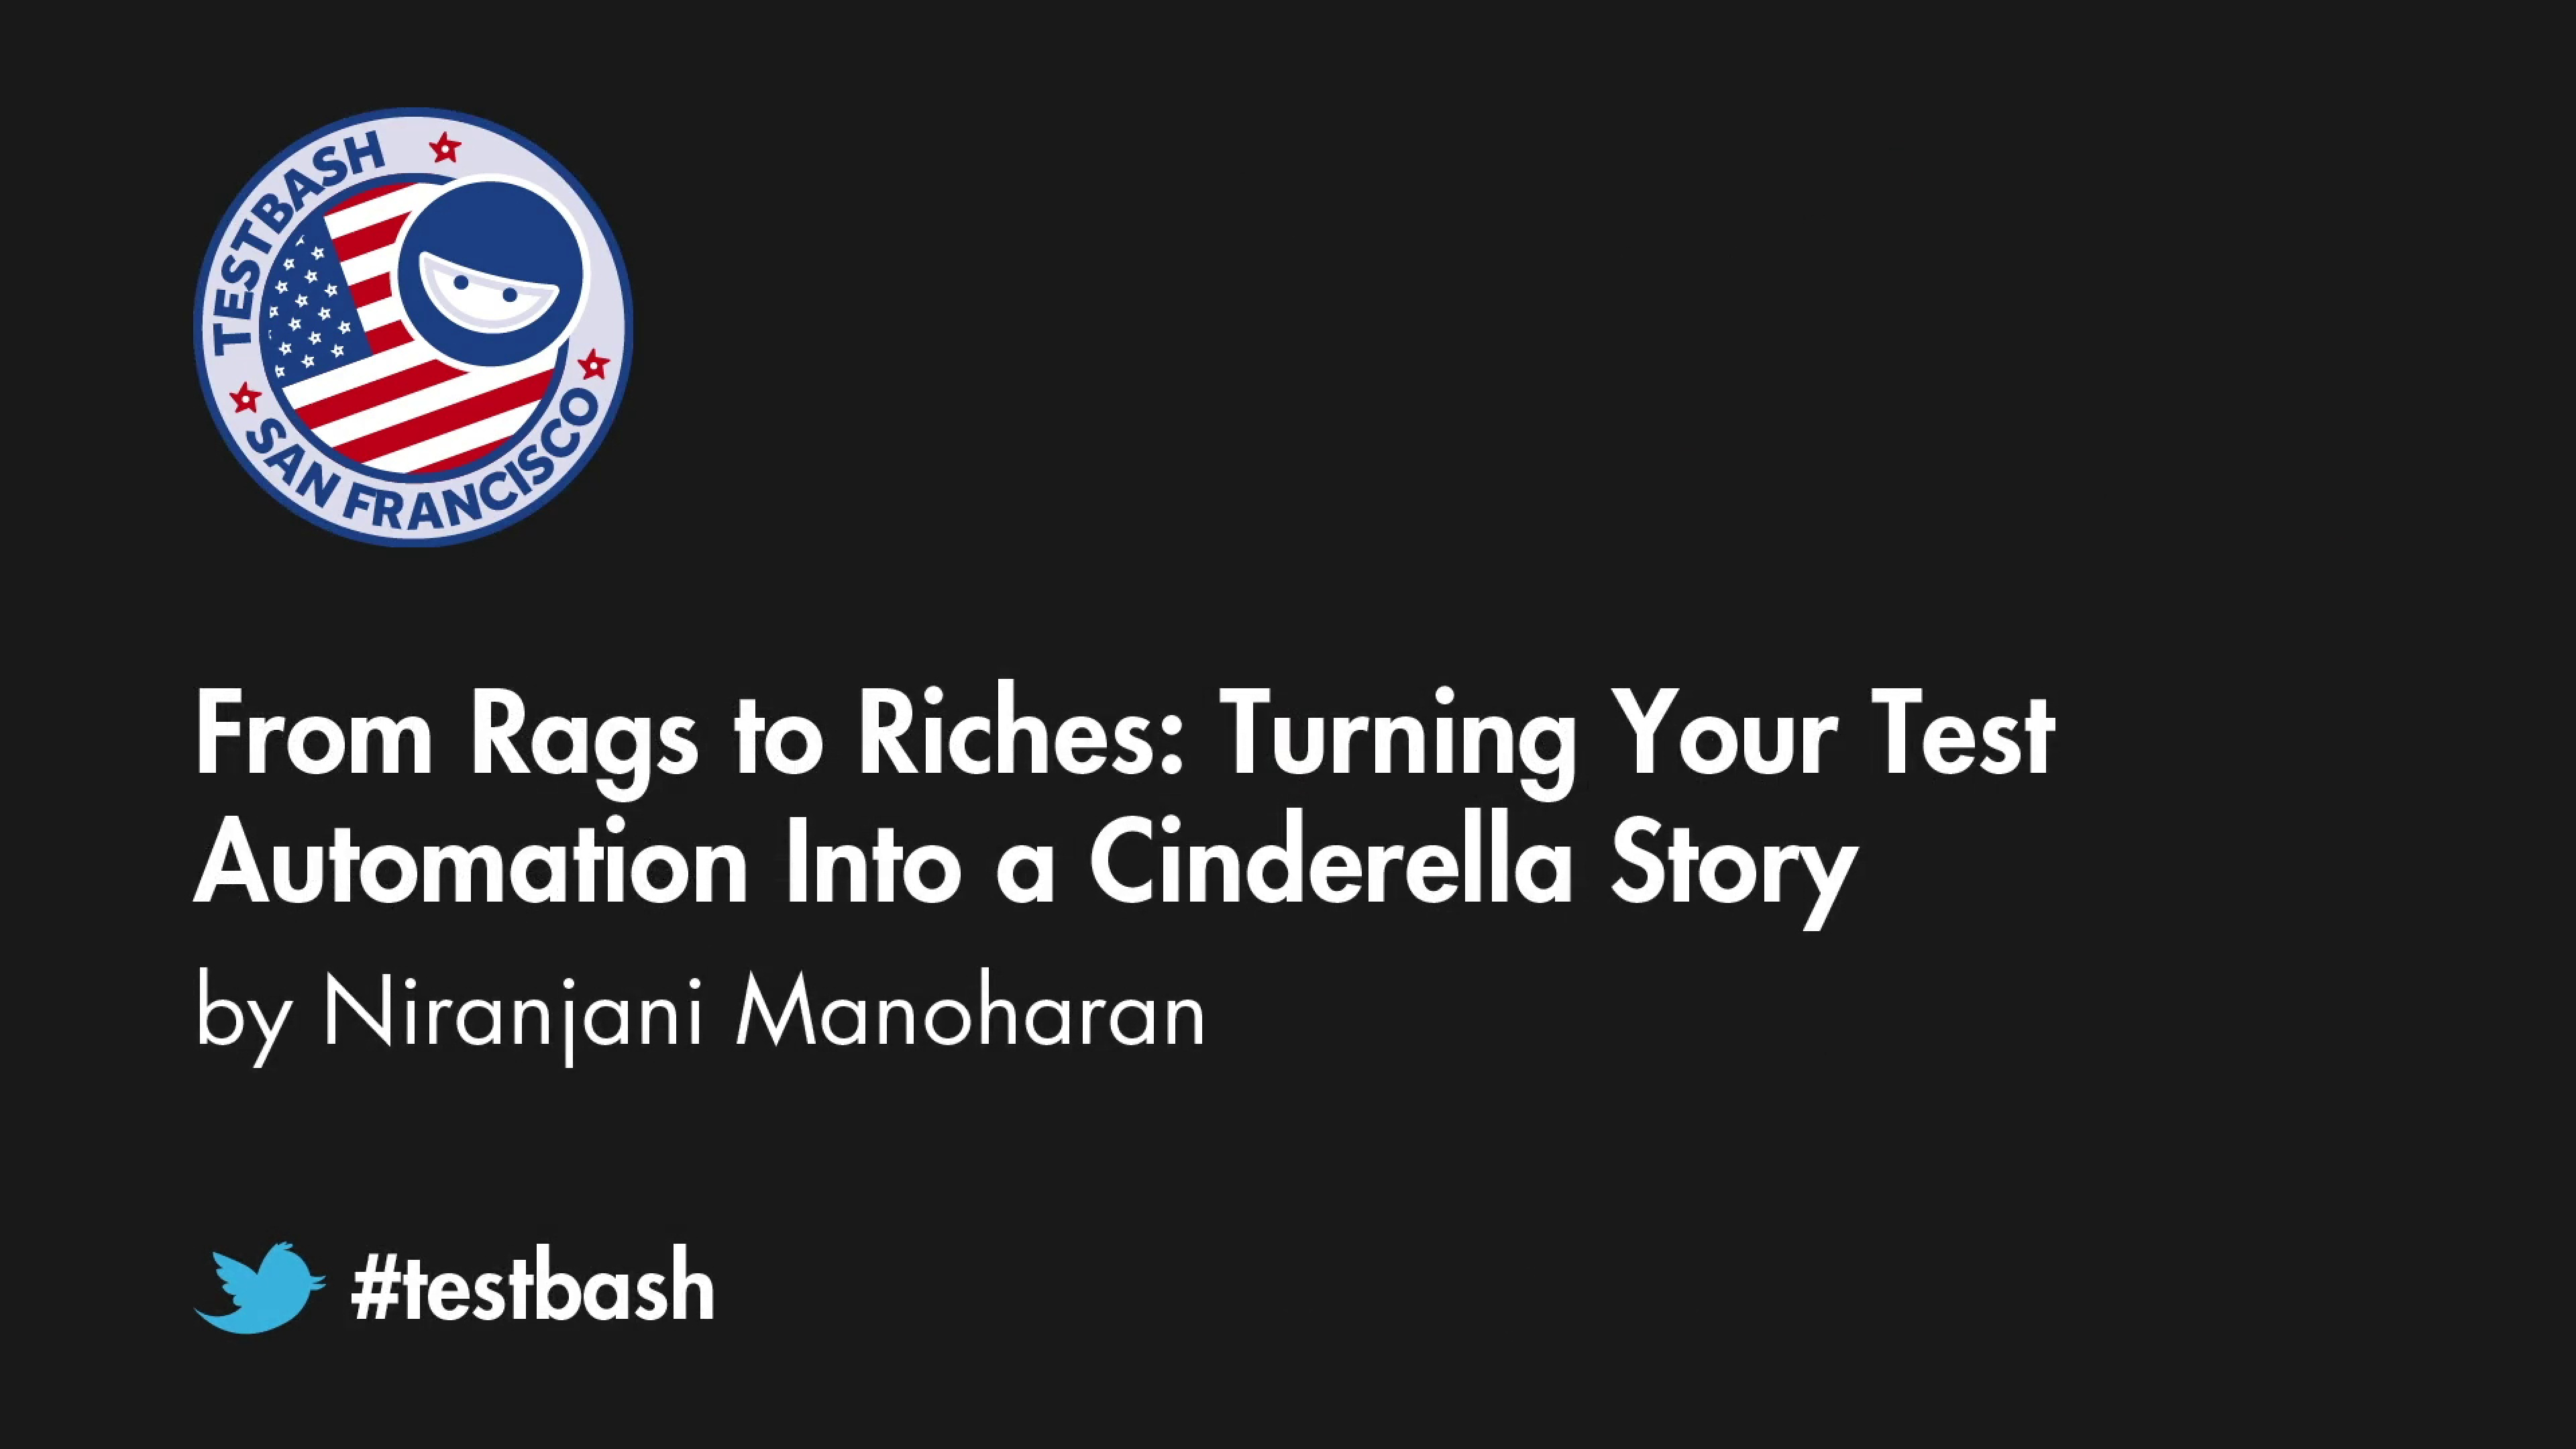 From Rags to Riches: Turning Your Test Automation Into a Cinderella Story - Niranjani Manoharan